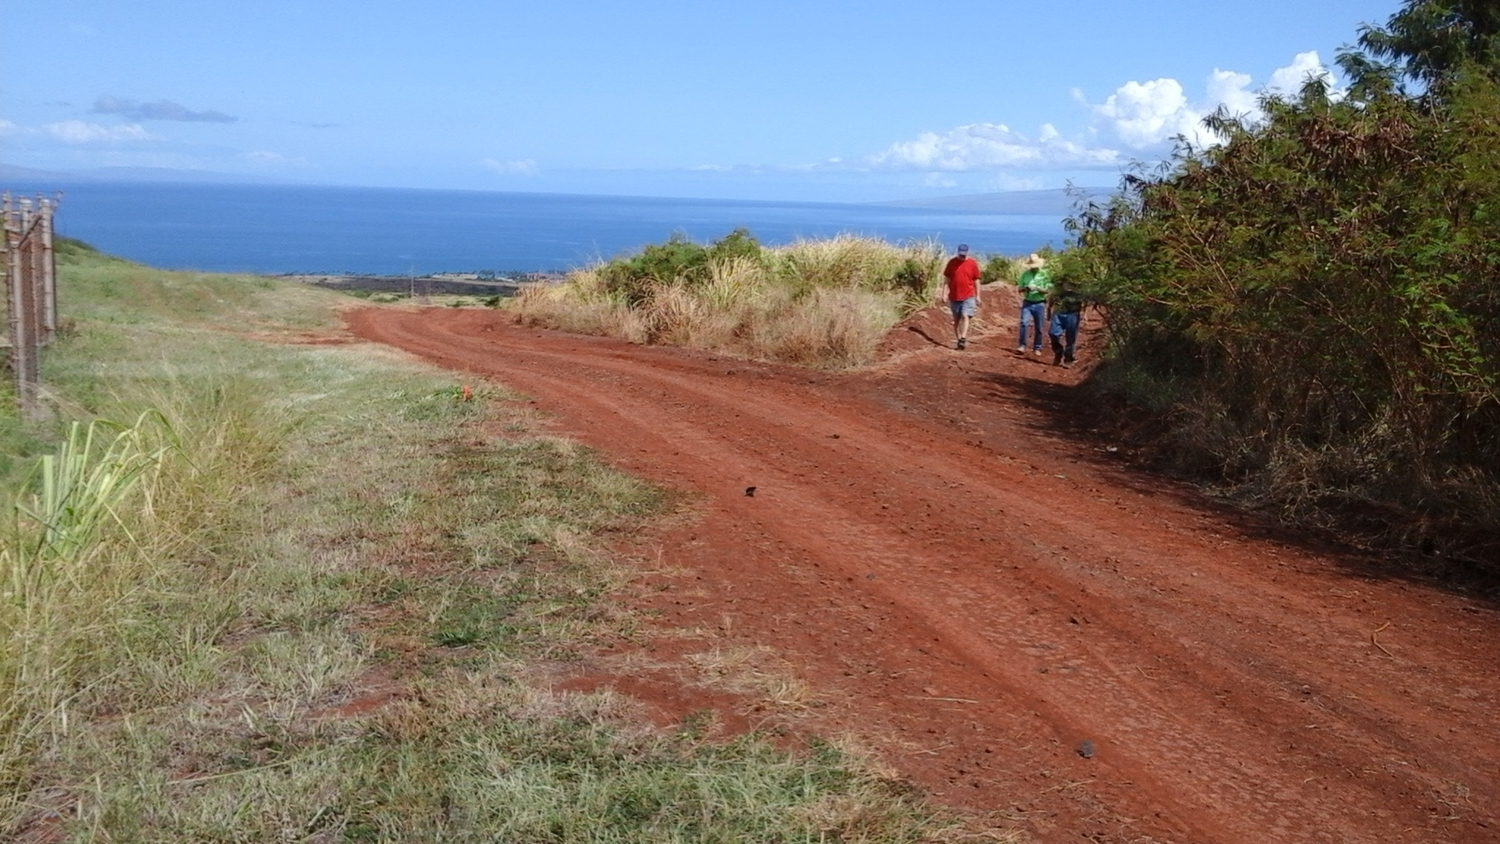 West Maui SWCD's Wahikuli-Honokowai Agricultural Road Drainage Improvement Project aims to improve coastal water quality and coral ecosystem function and health by reducing land-based pollution.